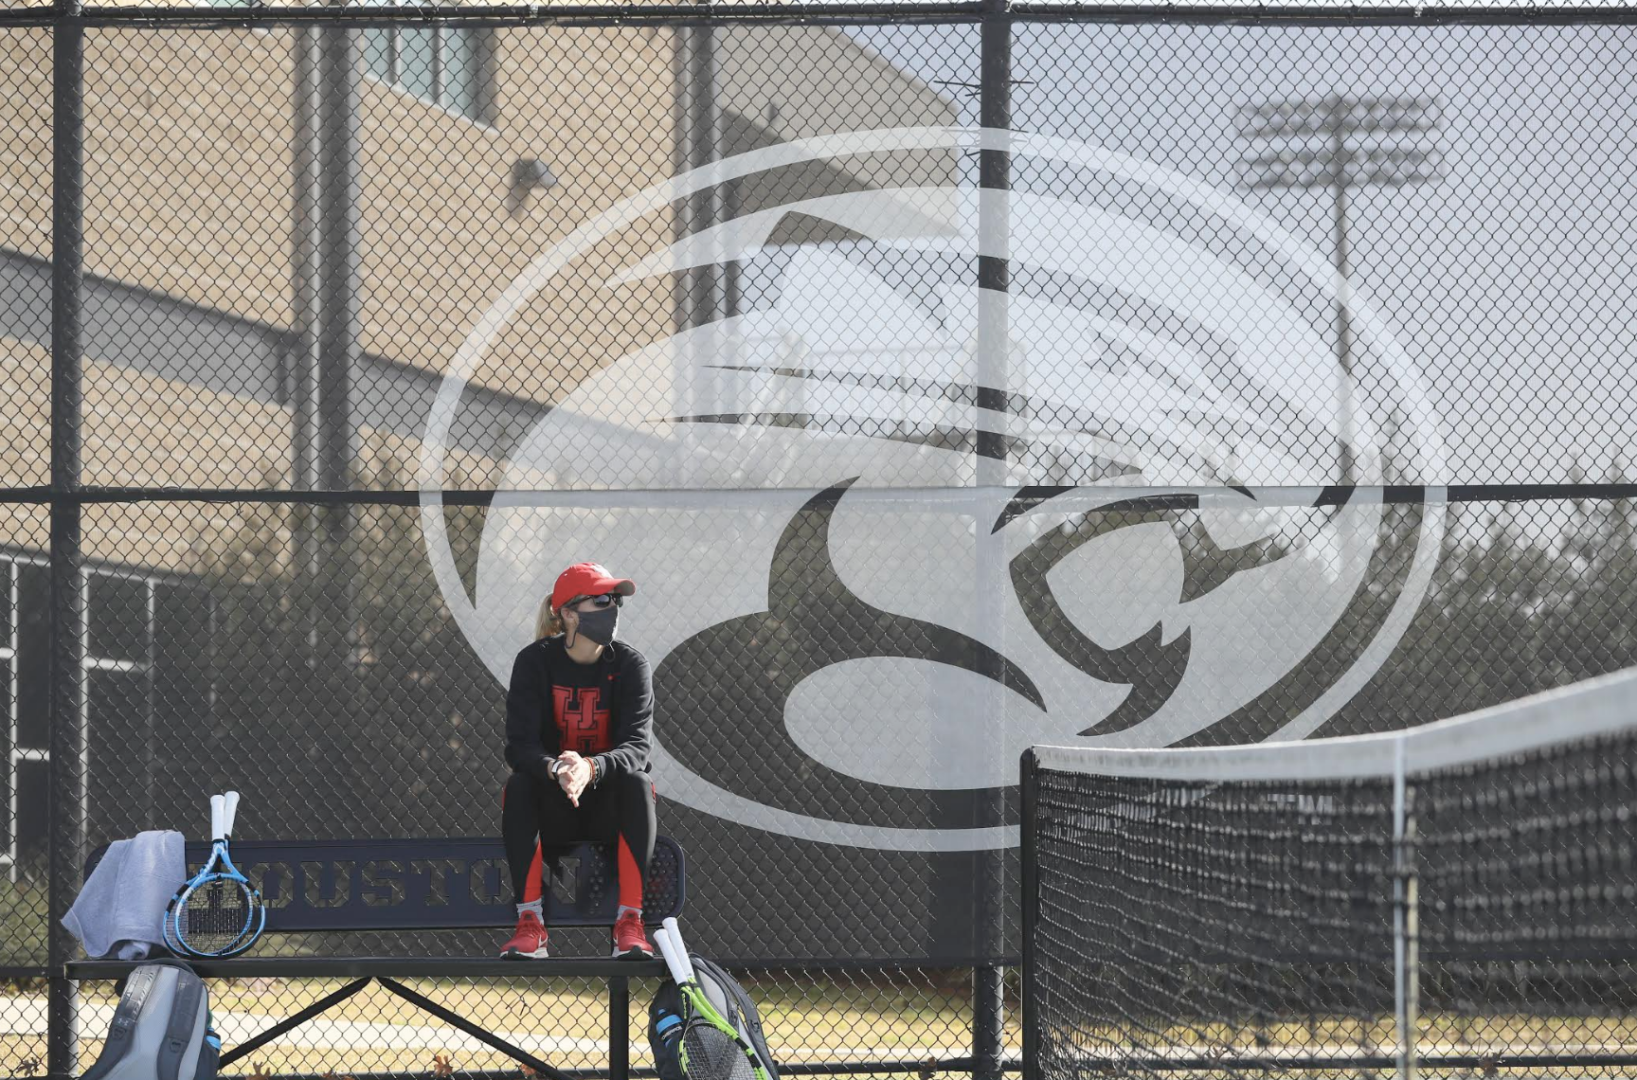 UH tennis head coach Helena Besovic watches on as her team practices at the Winston Tennis Facility. Besovic, who grew up in Sarajevo, Bosnia-Herzegovina, still uses the lessons she learned during and after the Bosnian War in her life.   Courtesy of UH athletics